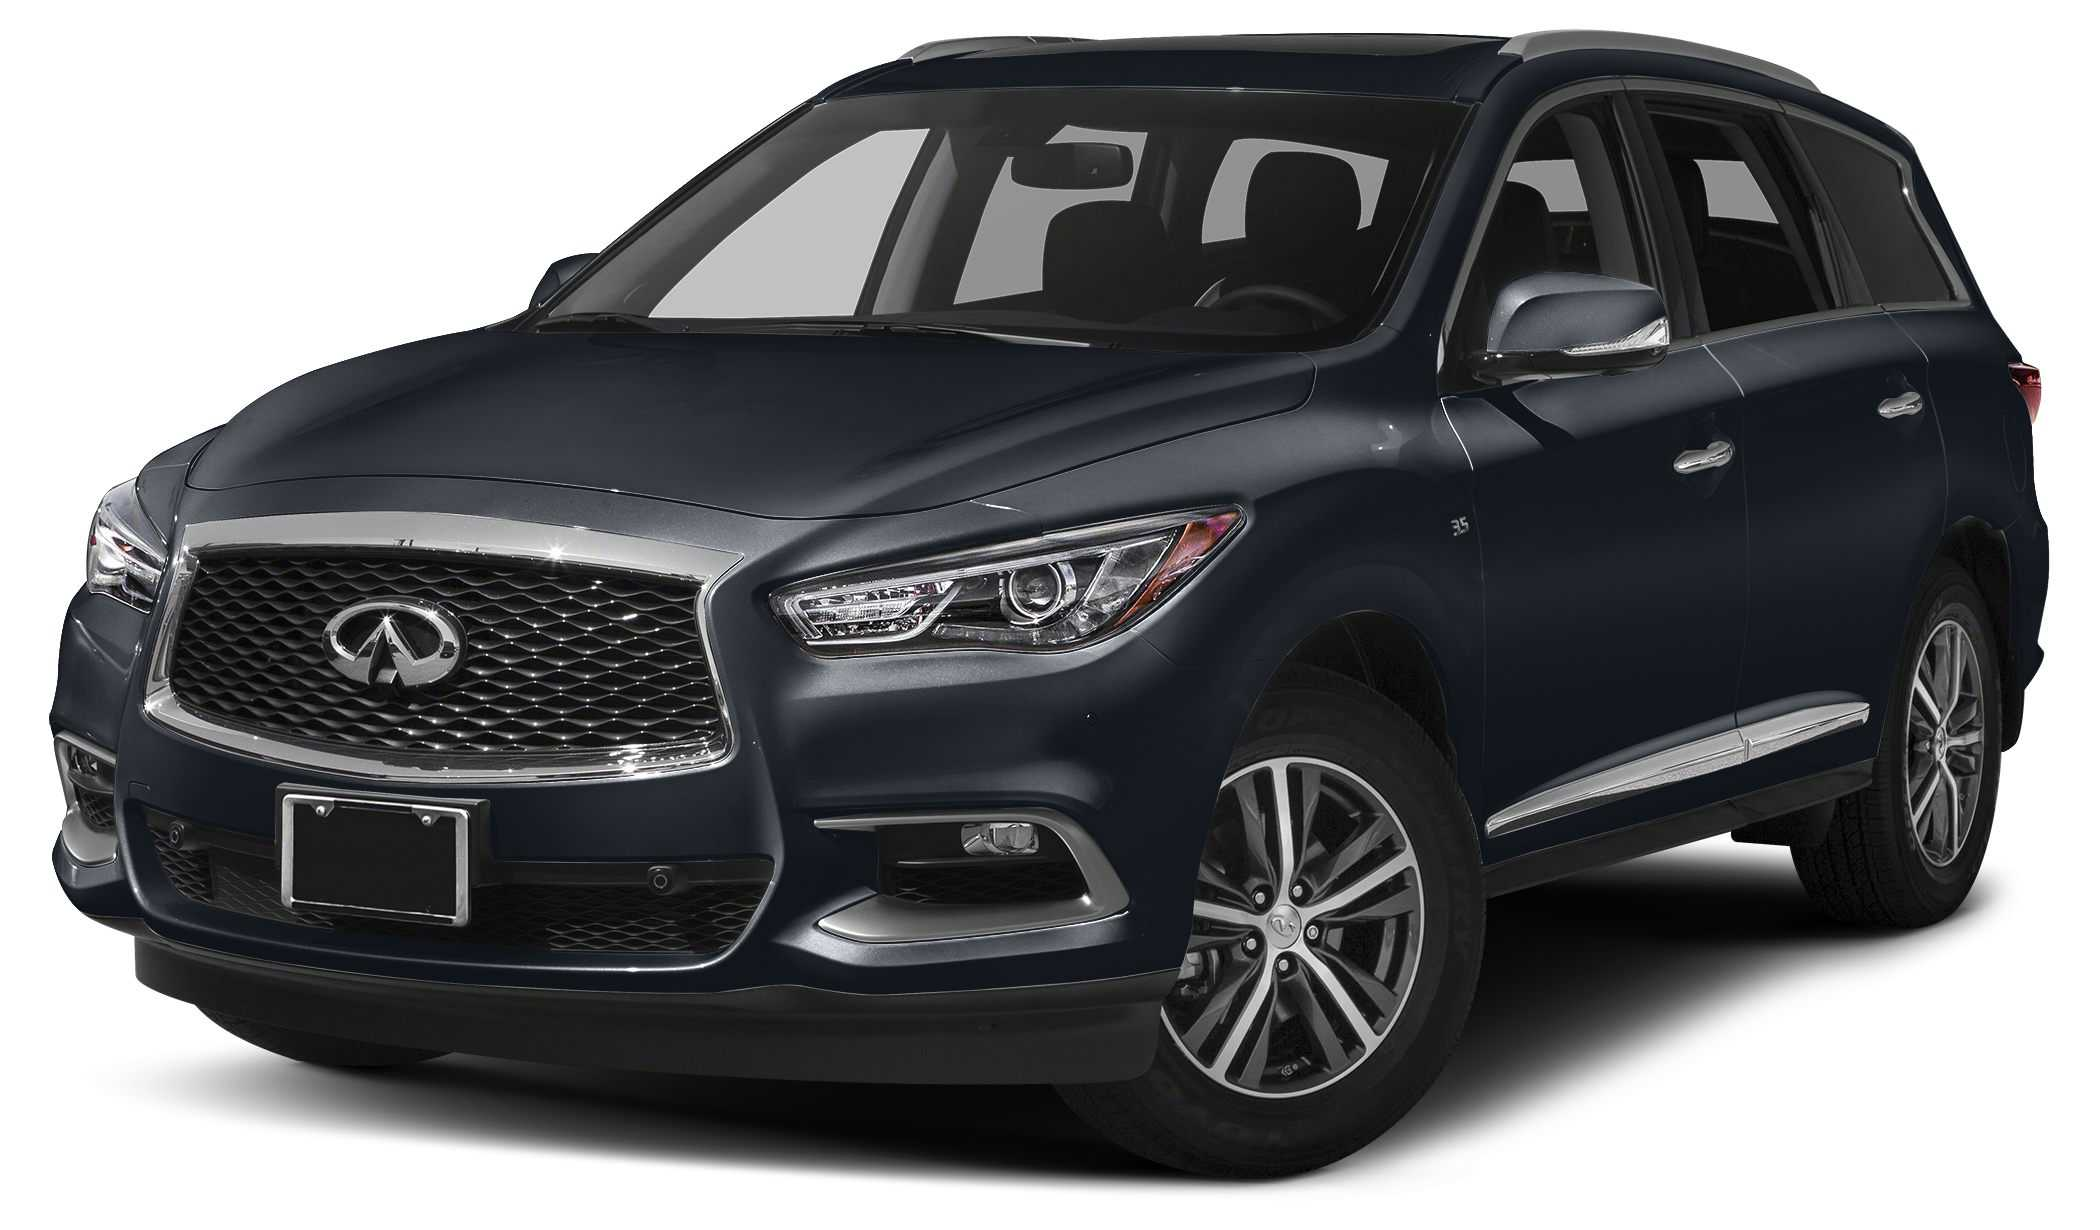 2017 infiniti qx60 for sale in chantilly va 5n1dl0mm4hc546330. Black Bedroom Furniture Sets. Home Design Ideas